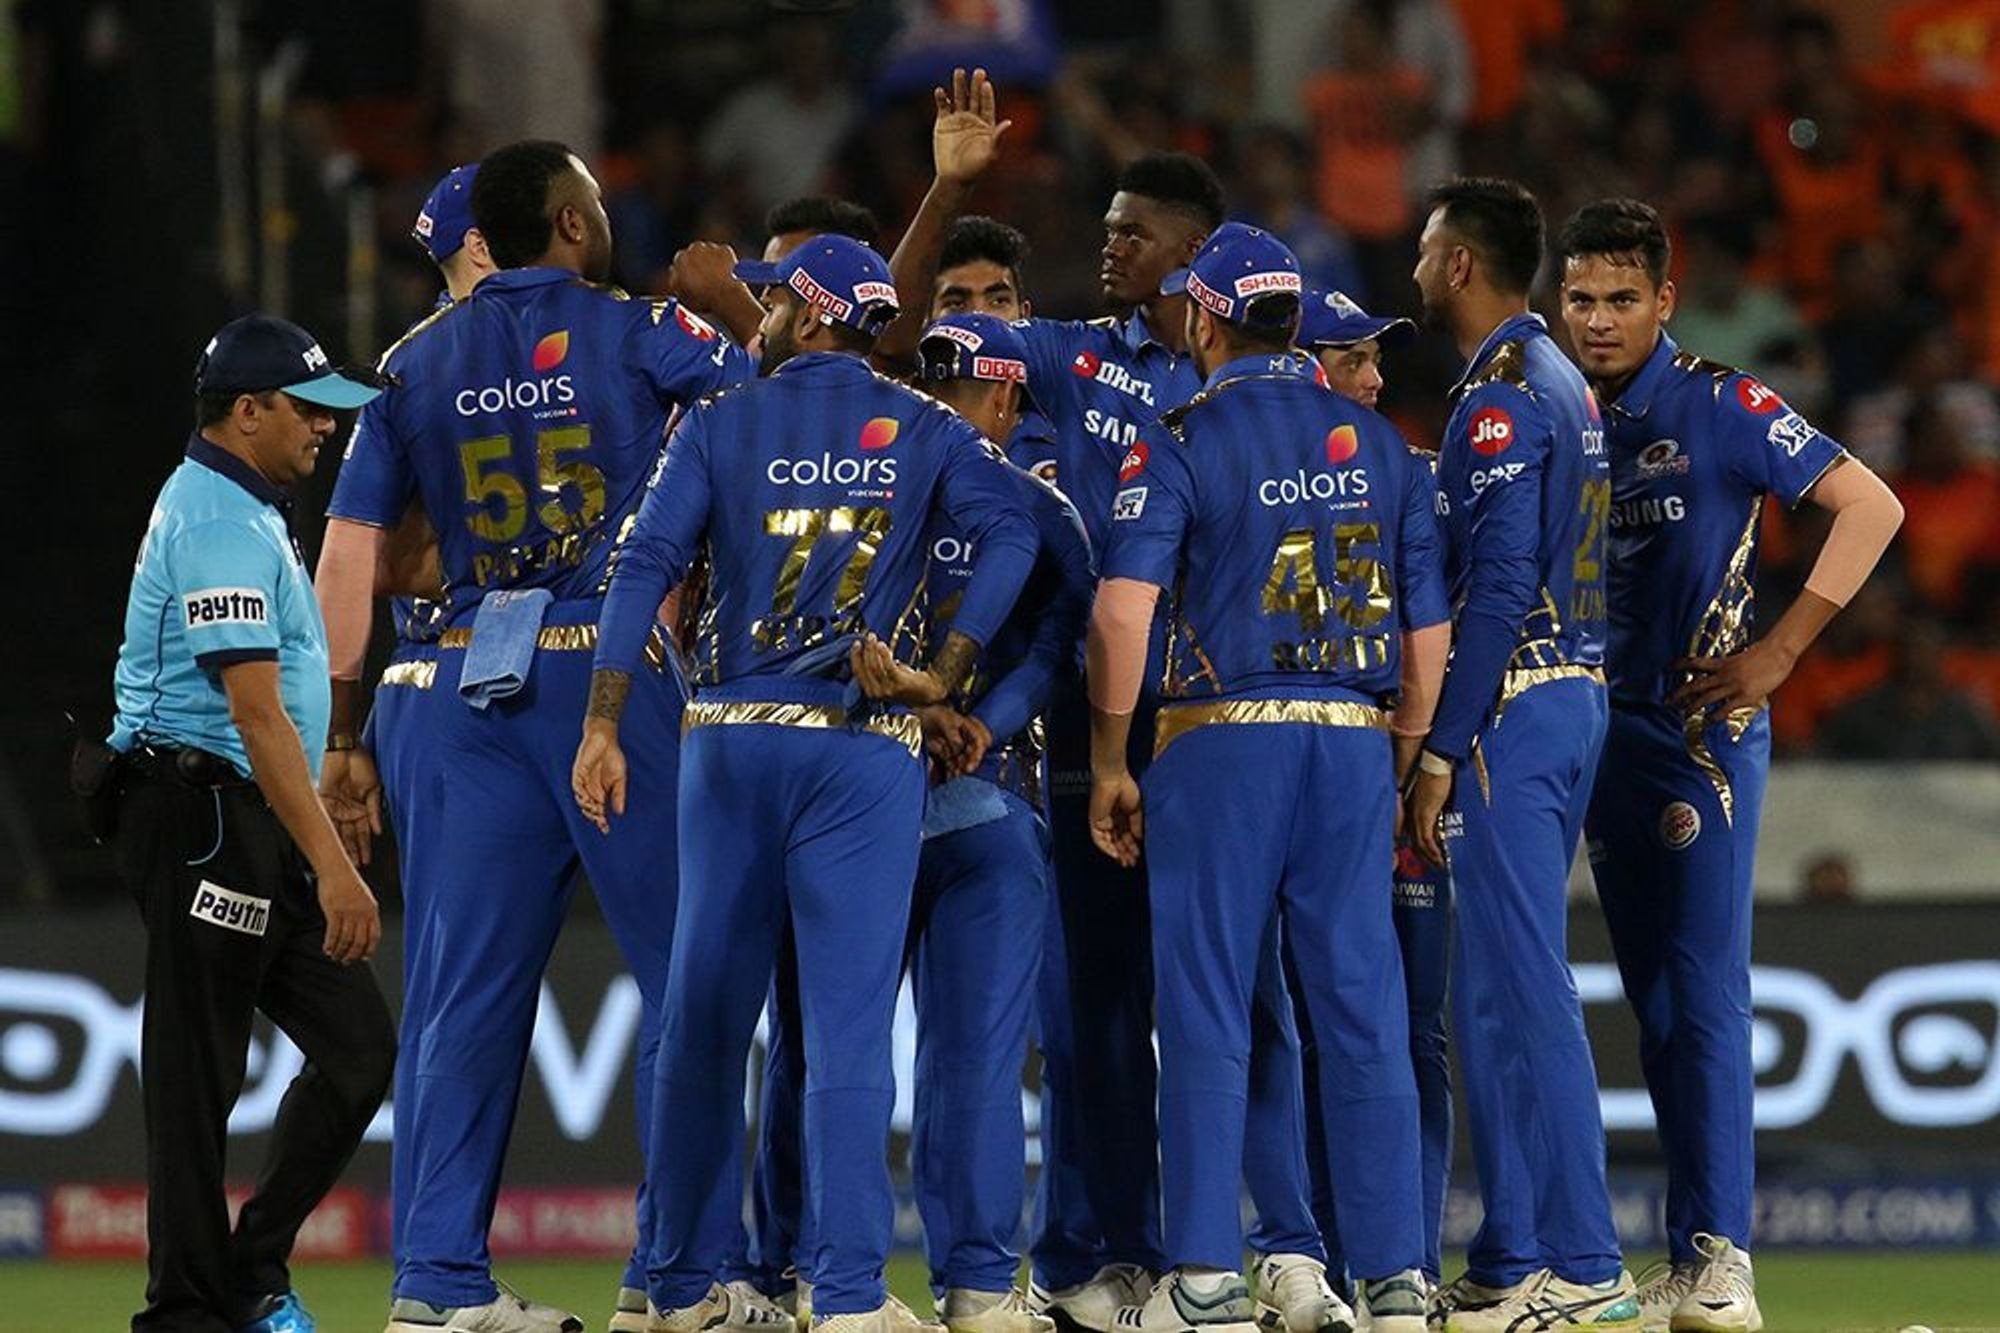 IPL 2019 Final Preview: An ultimate encounter between the two three-time champions